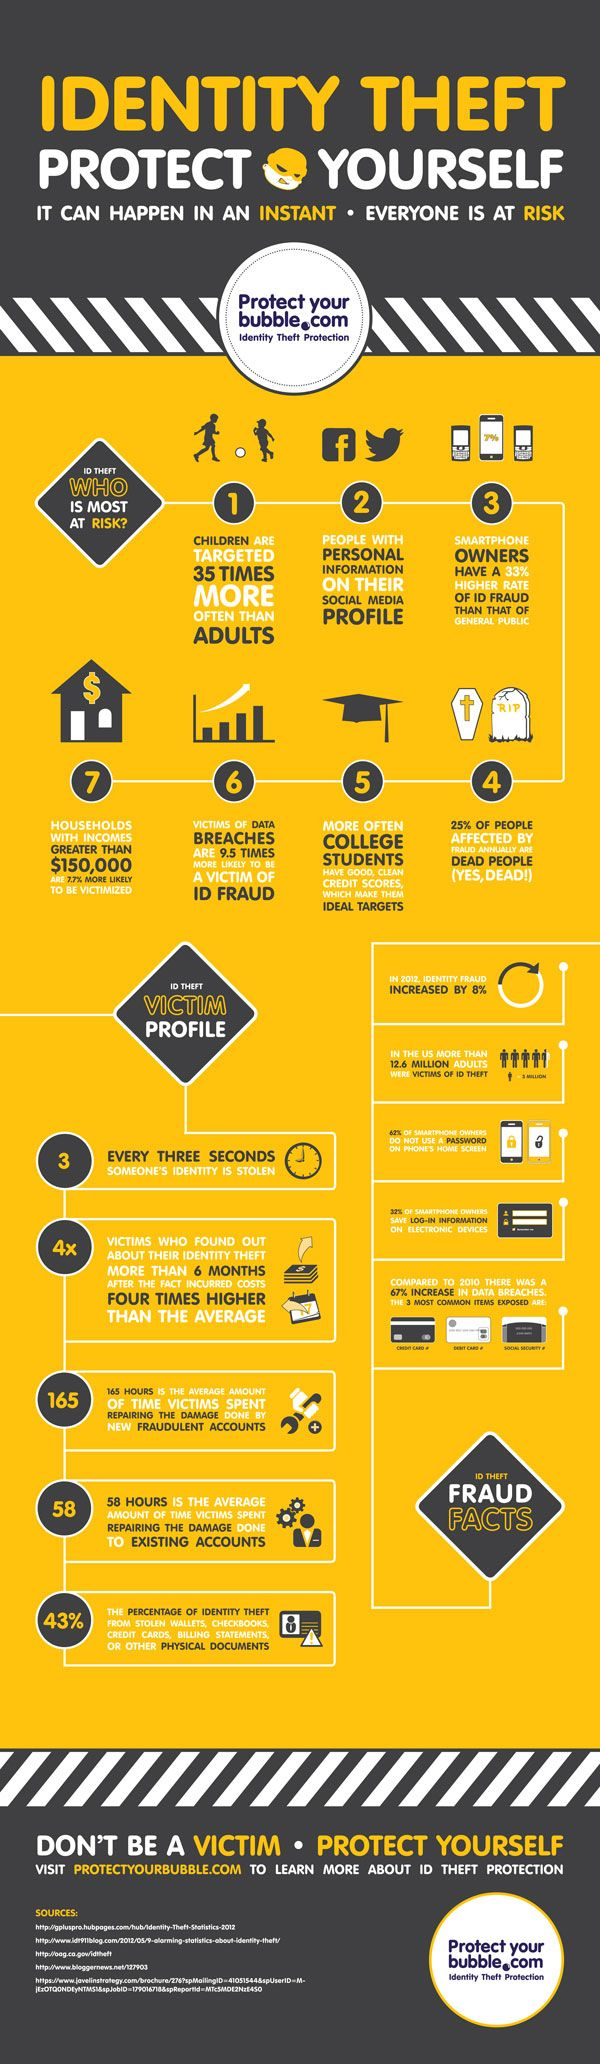 The identity theft statistics are scary. While you could turn stick your head in the sand and cross your fingers that id theft and fraud don't happen to you or your loved ones, it makes much better sense to empower yourself by being aware. The Protect Your Bubble team has put together the following free infographic illustrating who is most at risk. Please share! If you're interested in learning more, we invite you to check out our ID Theft Protection services.